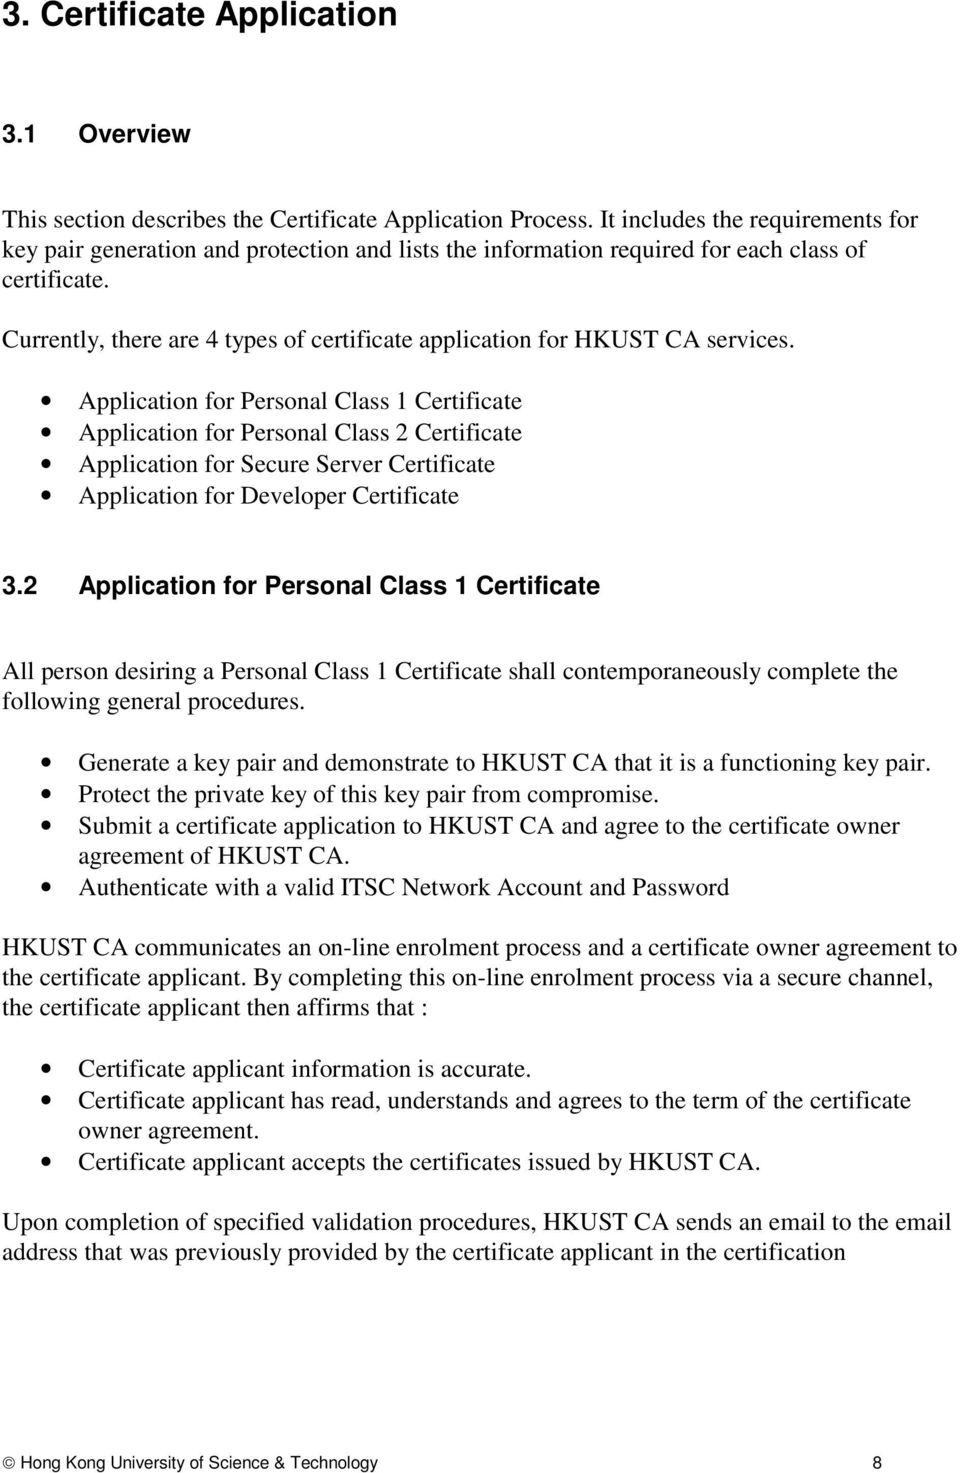 Currently, there are 4 types of certificate application for HKUST CA services.